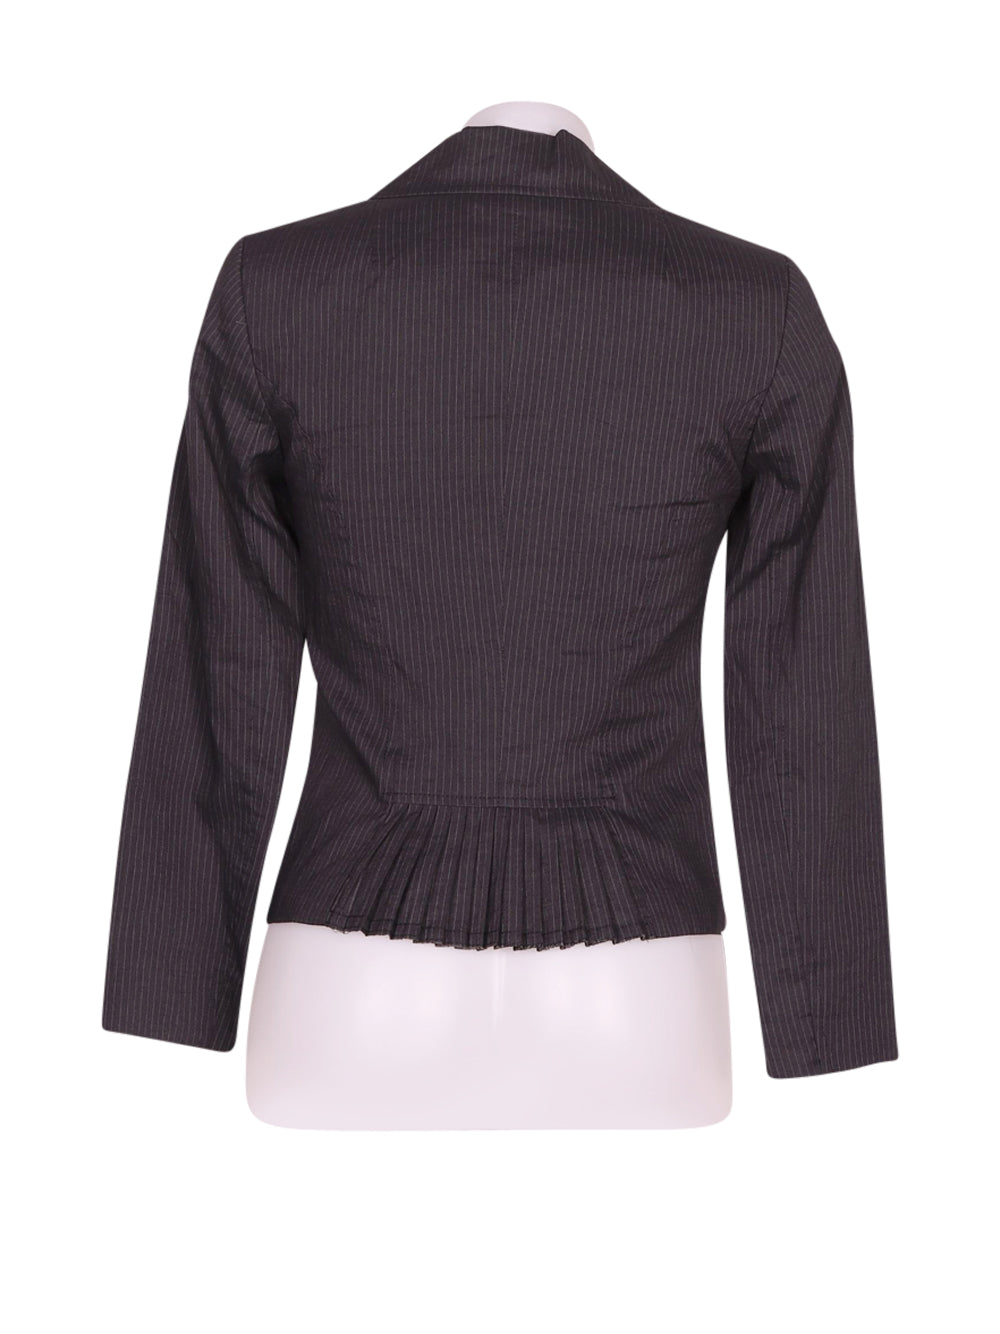 Back photo of Preloved Nell&me Grey Woman's blazer - size 8/S